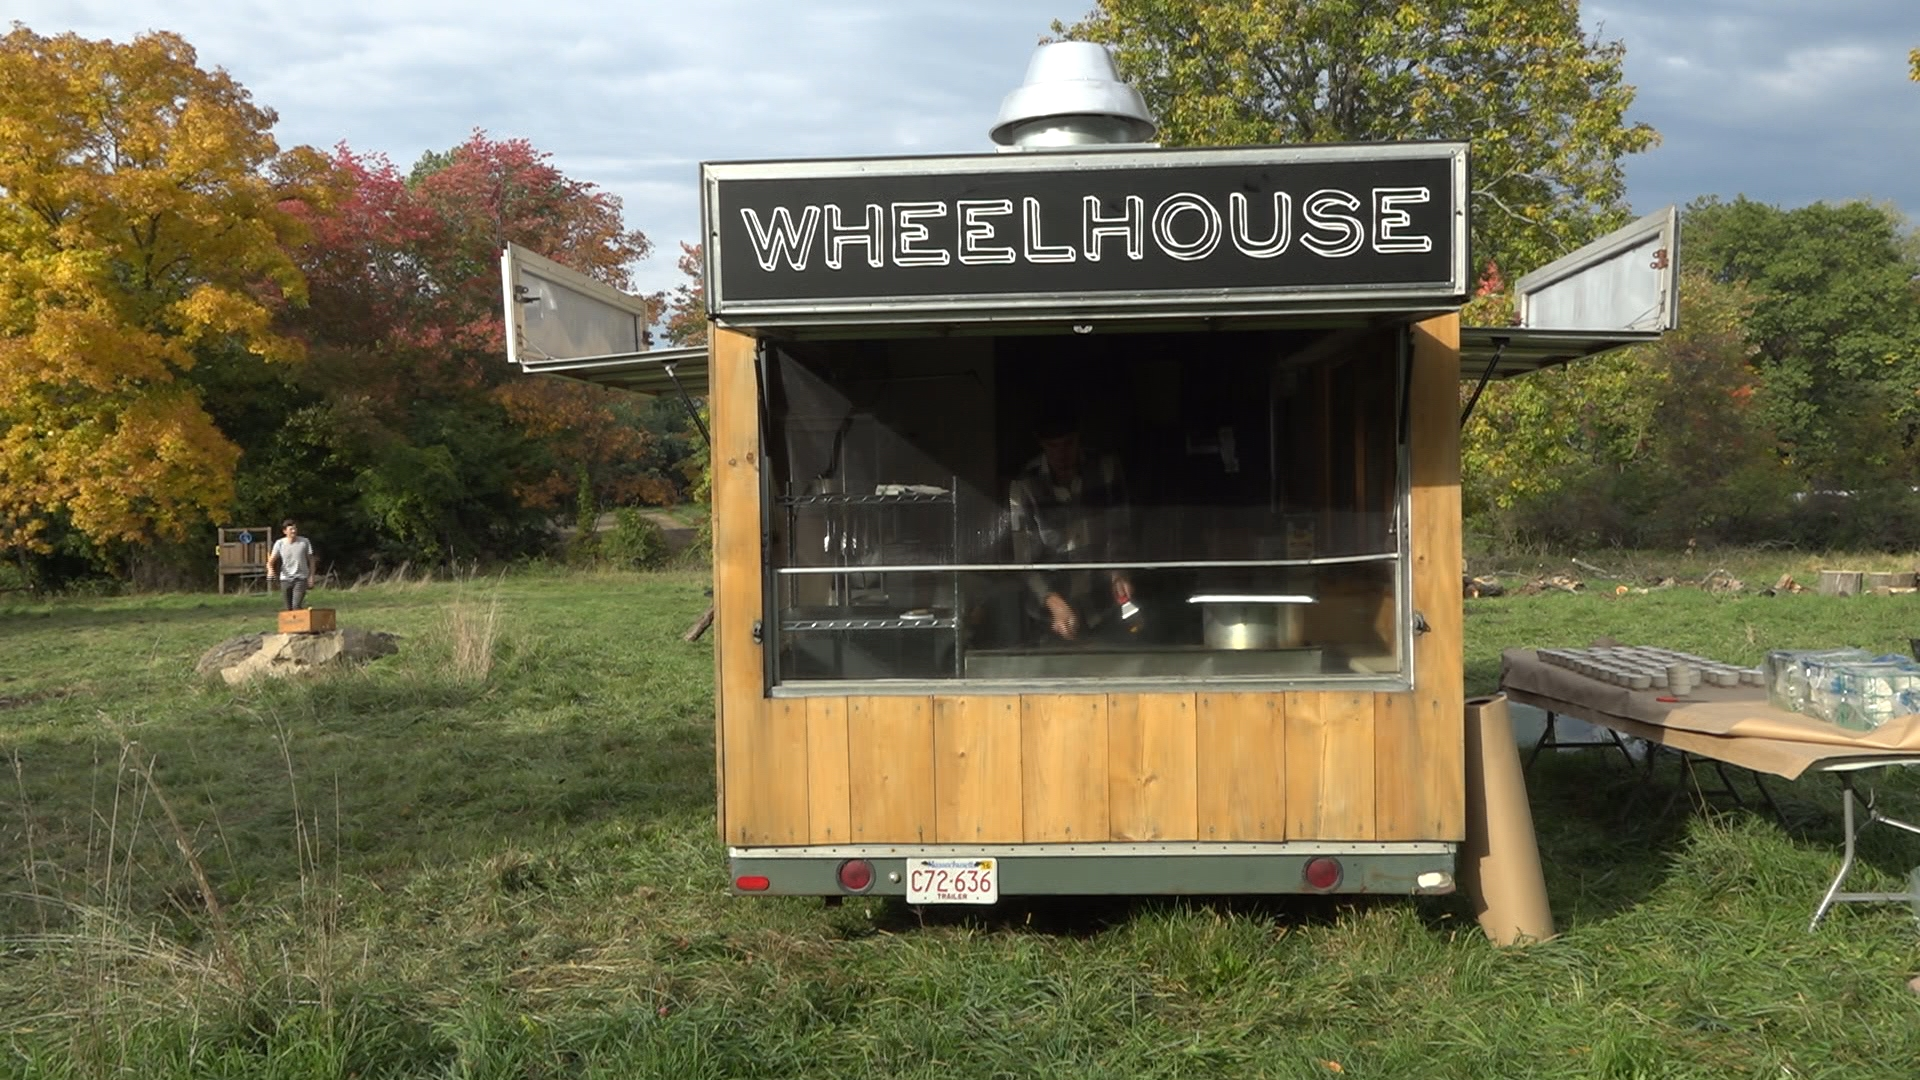 Jake Mazar & Will Van Heuvelen founded Wheelhouse, a farm-to-table caterer & food truck, to emphasis the value of locally-sourced food.